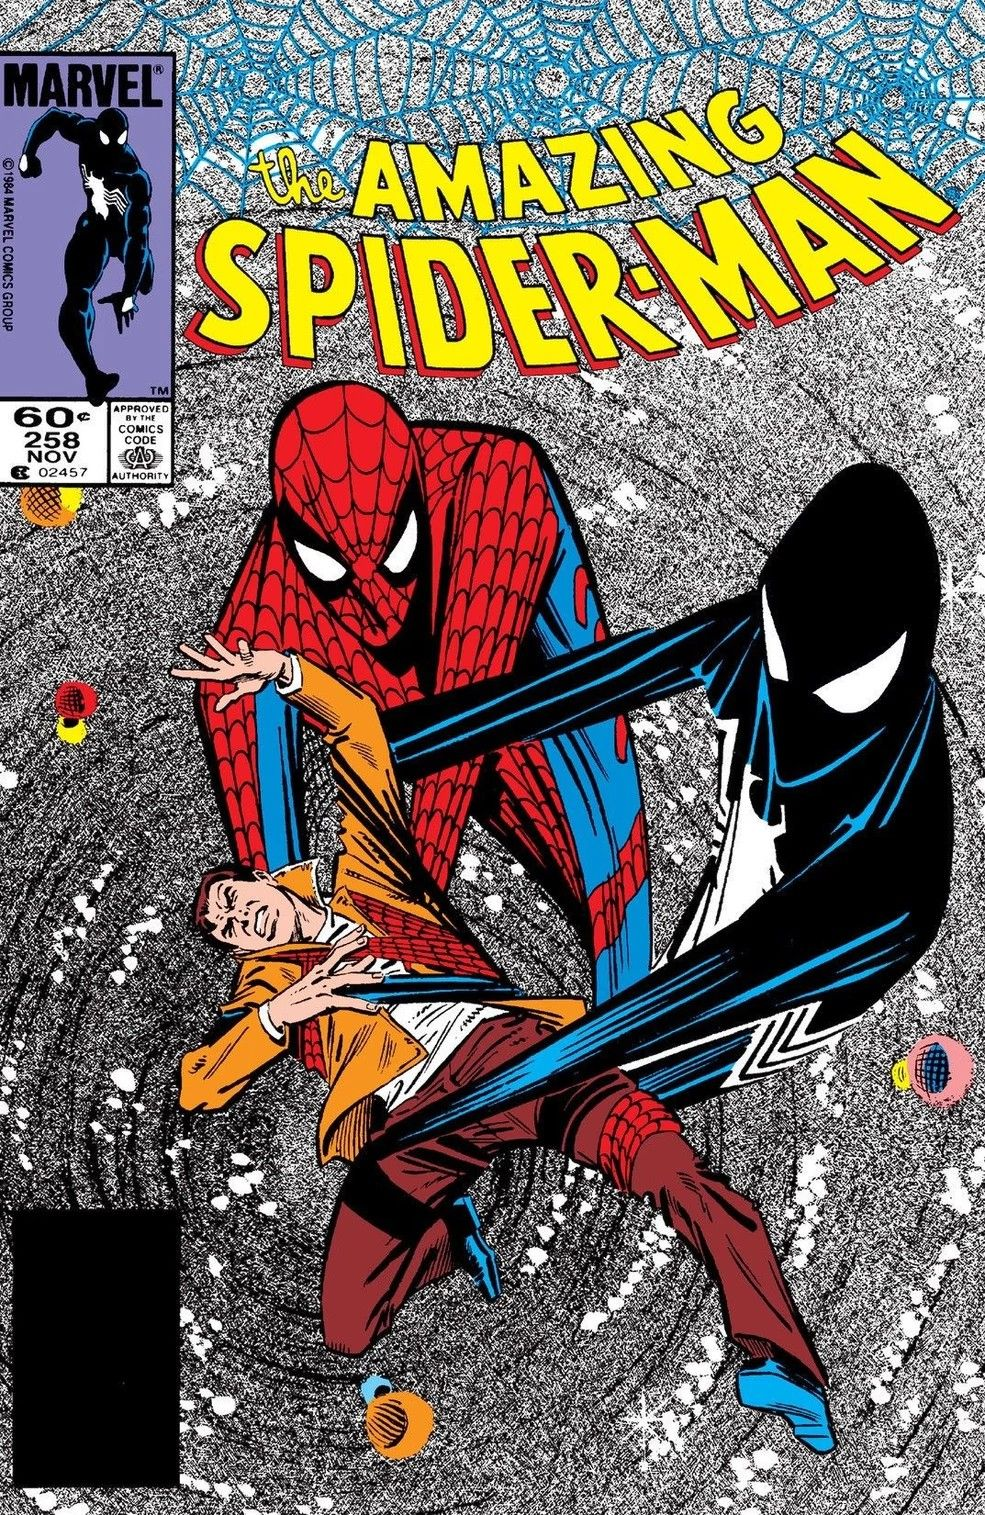 Pin by David Duerksen on Comic issues I have Spiderman